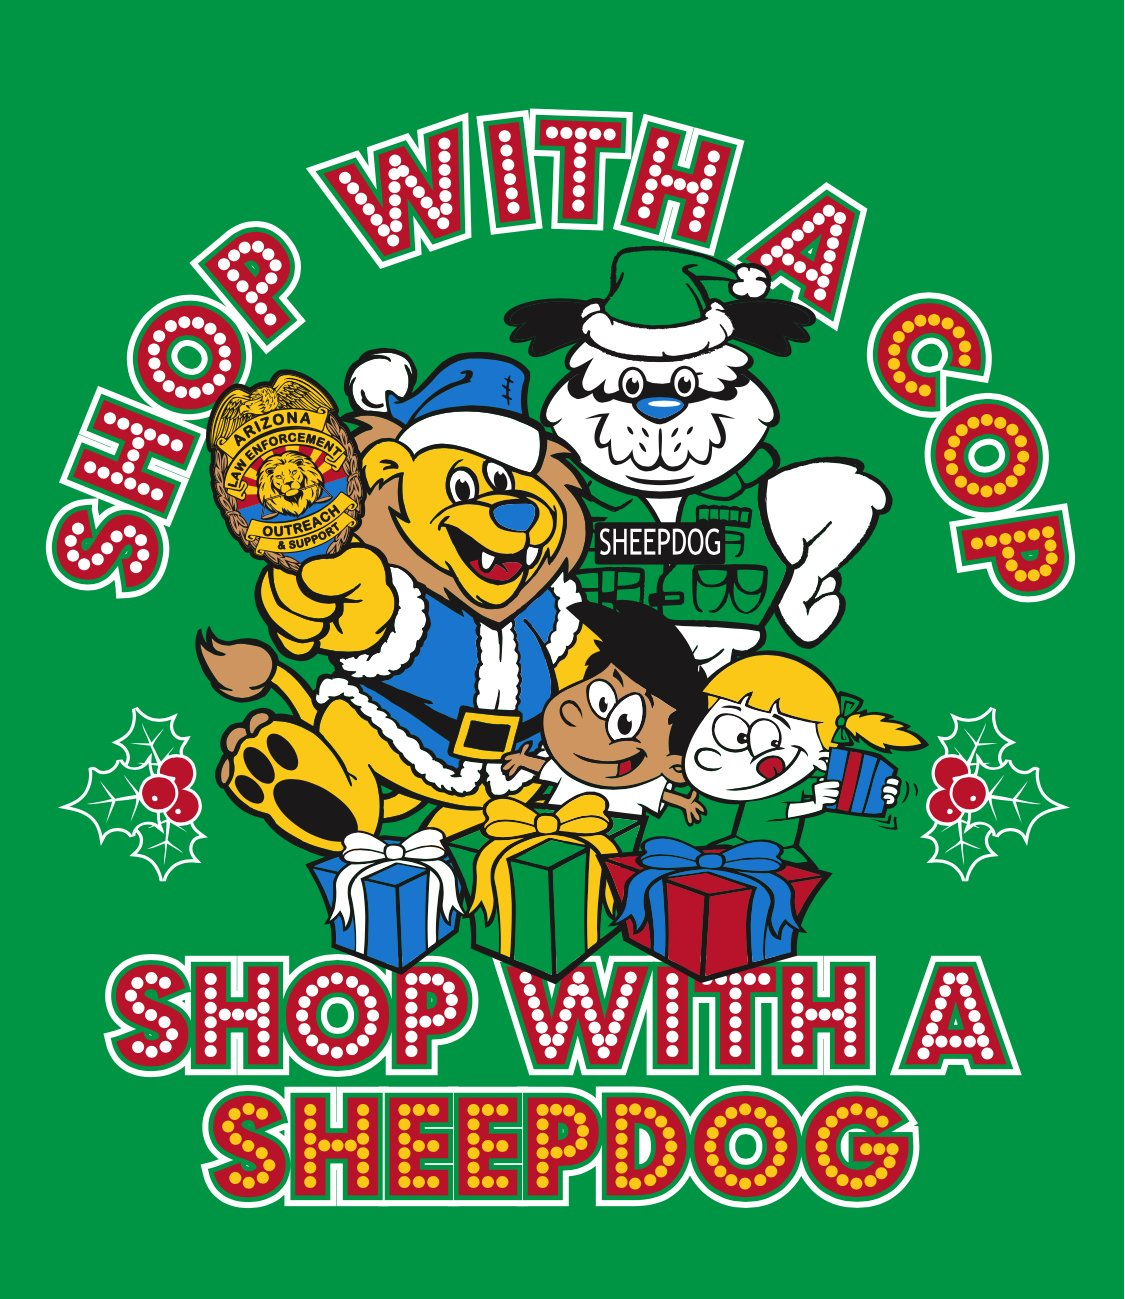 Shop With a Cop Shop With a Sheepdog 2017 Logo